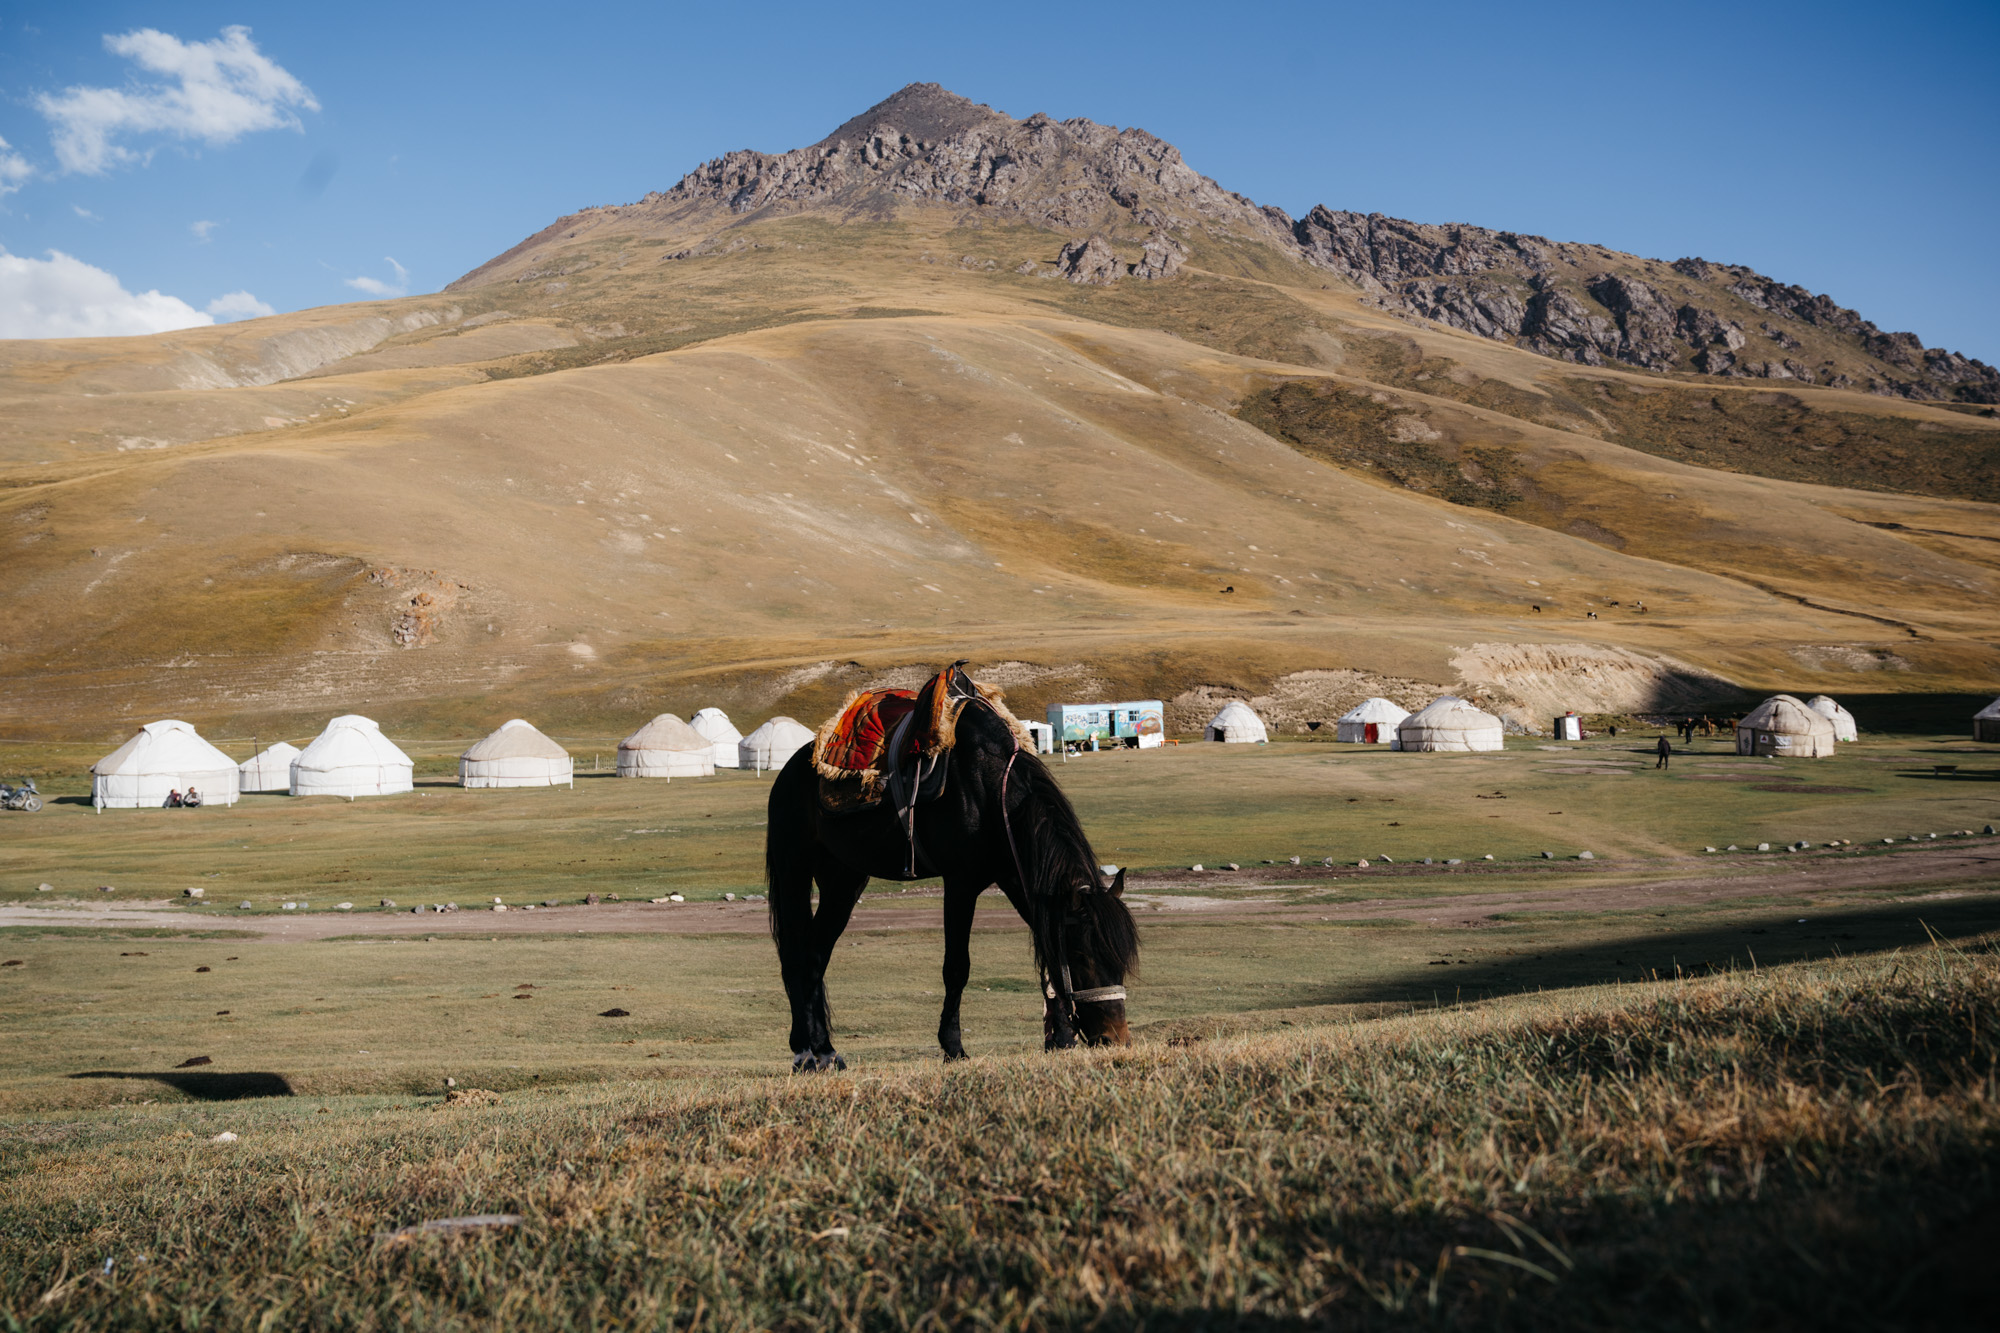 A nearby horse with some yurts in the background.